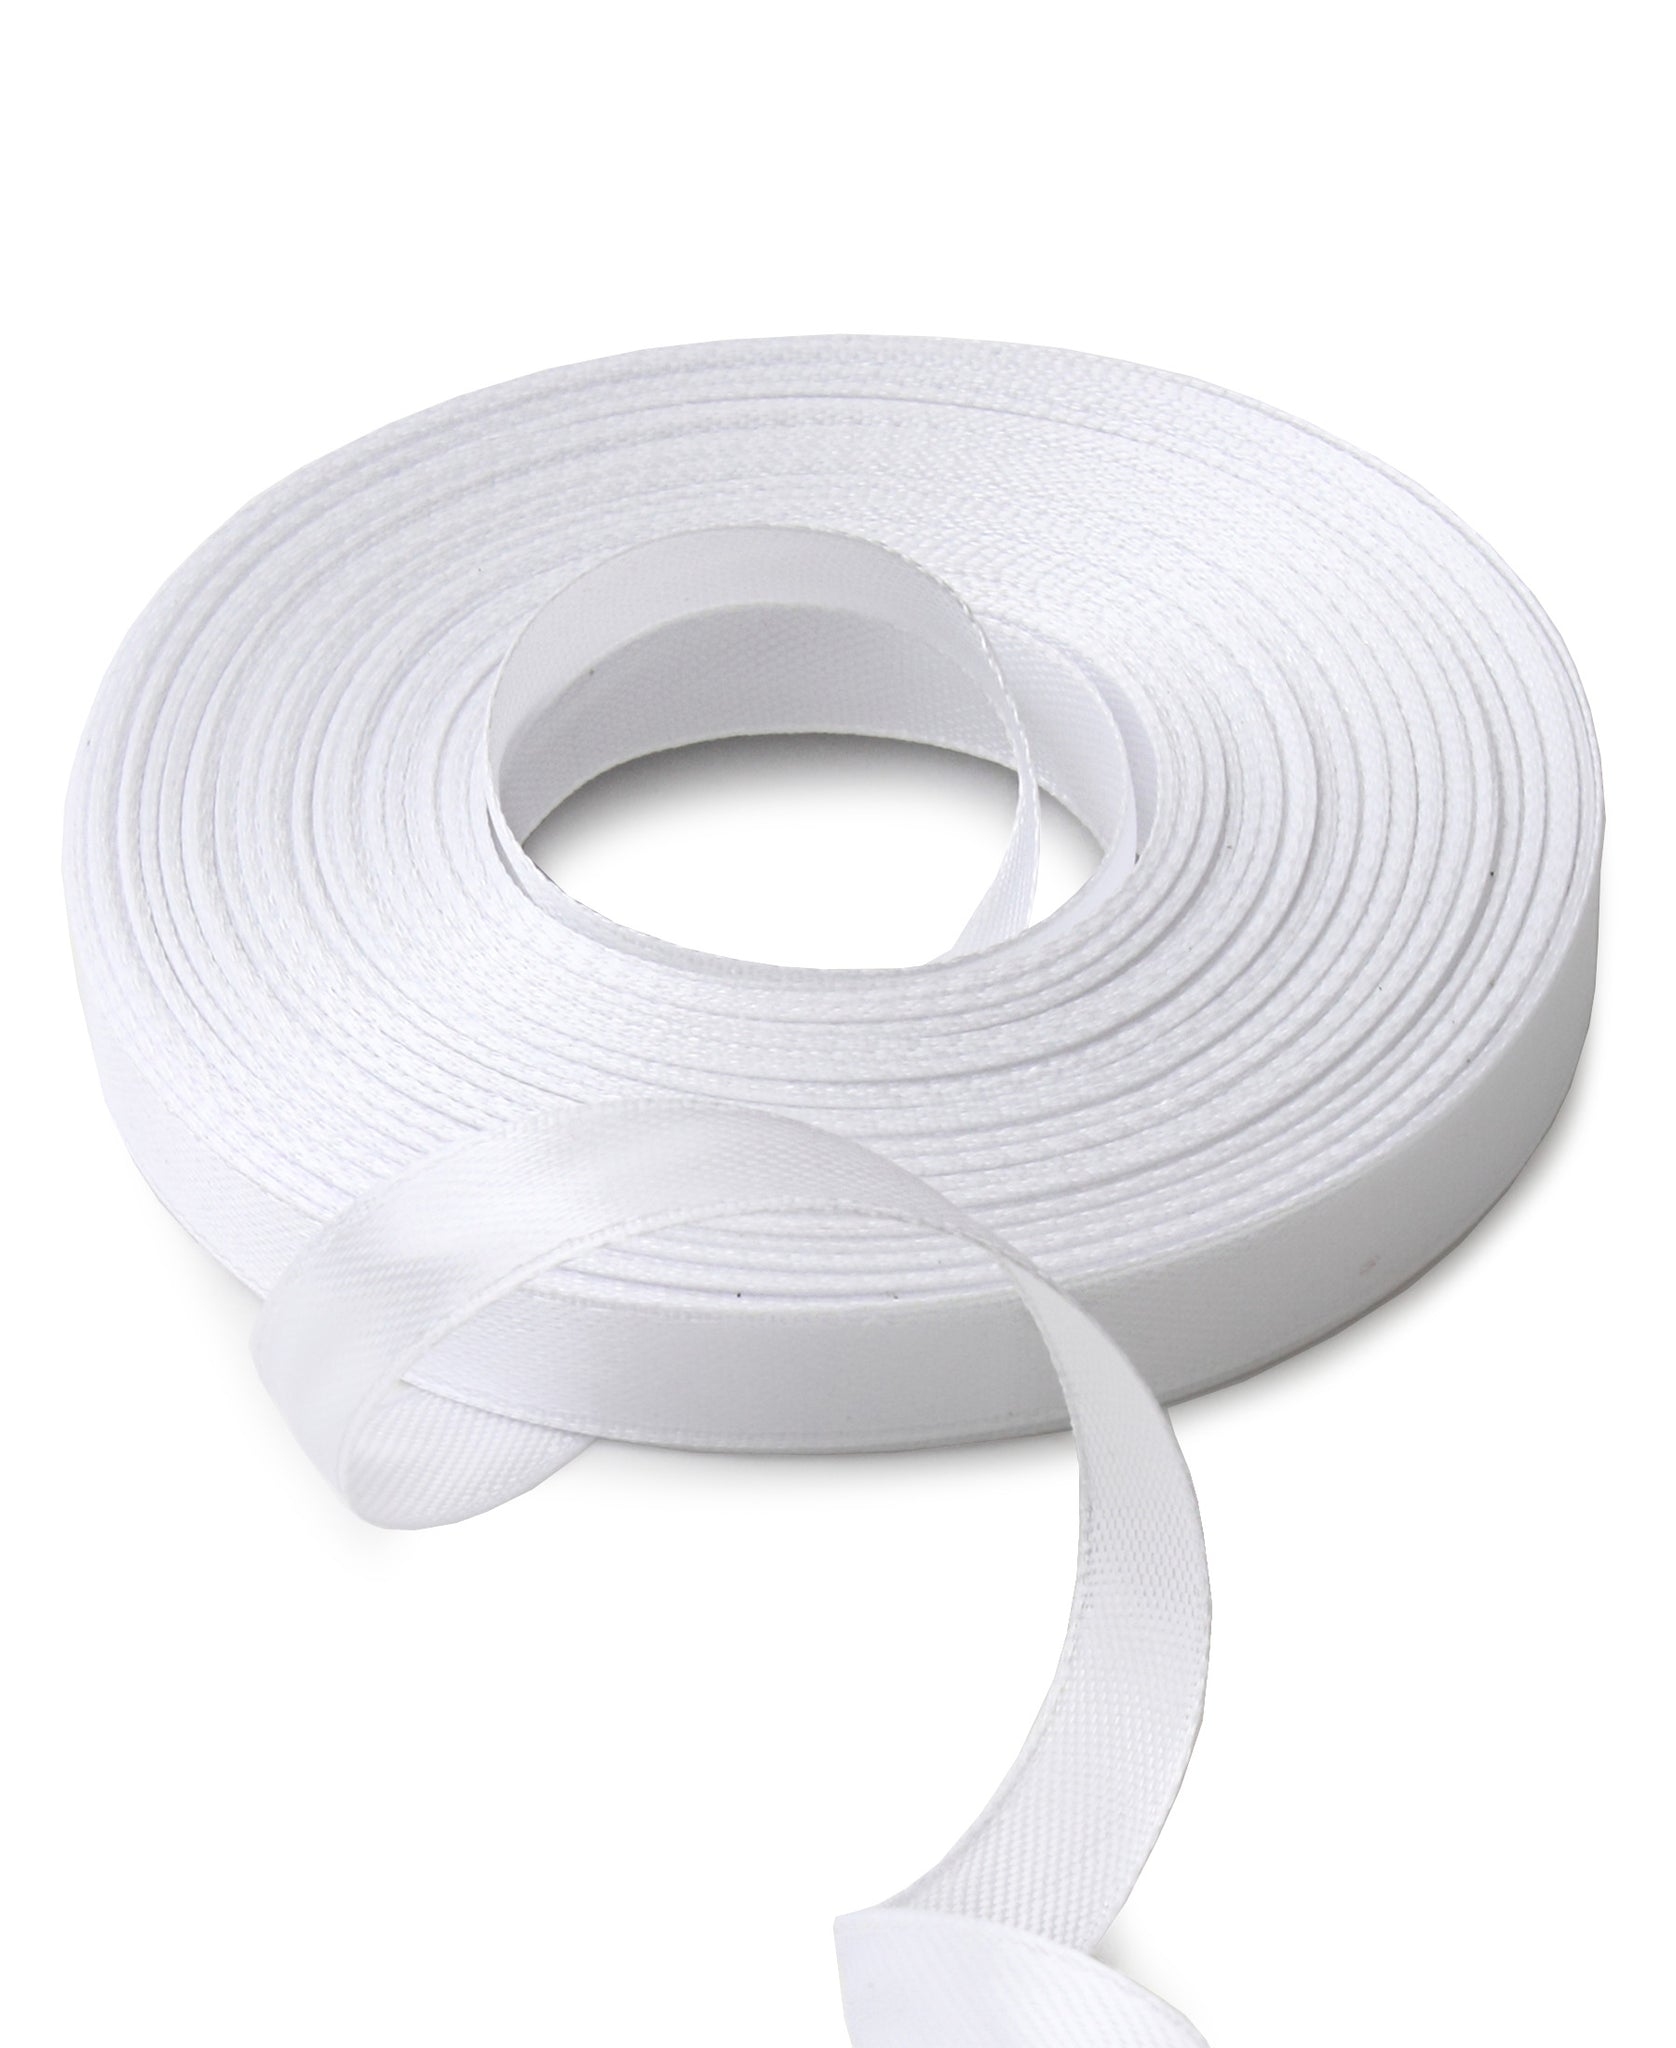 Satin Ribbon - White